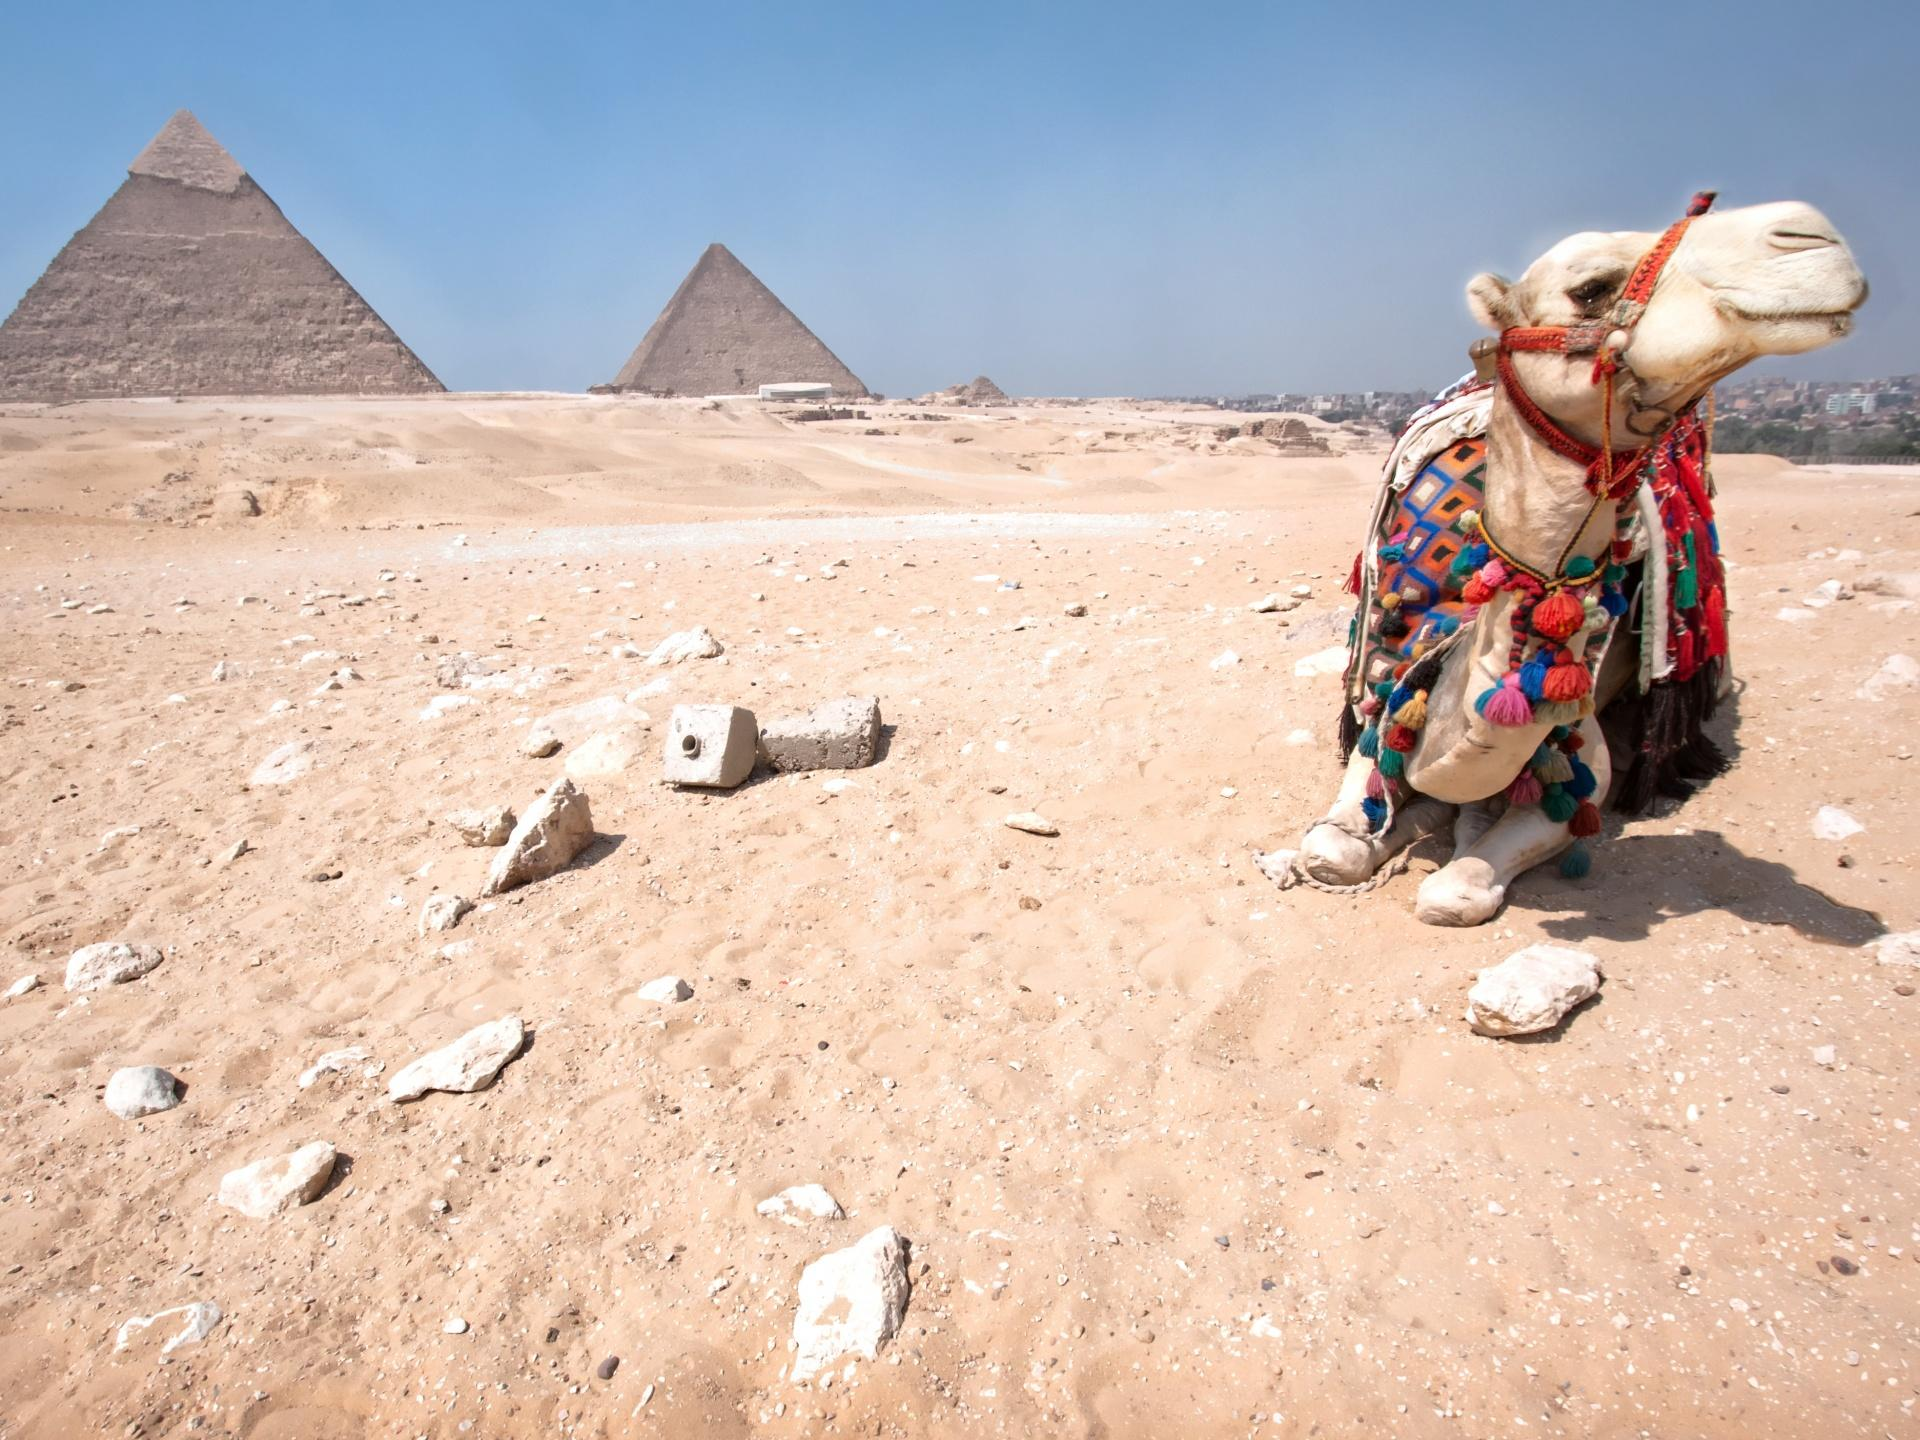 Pyramids of Giza and camel Wallpapers